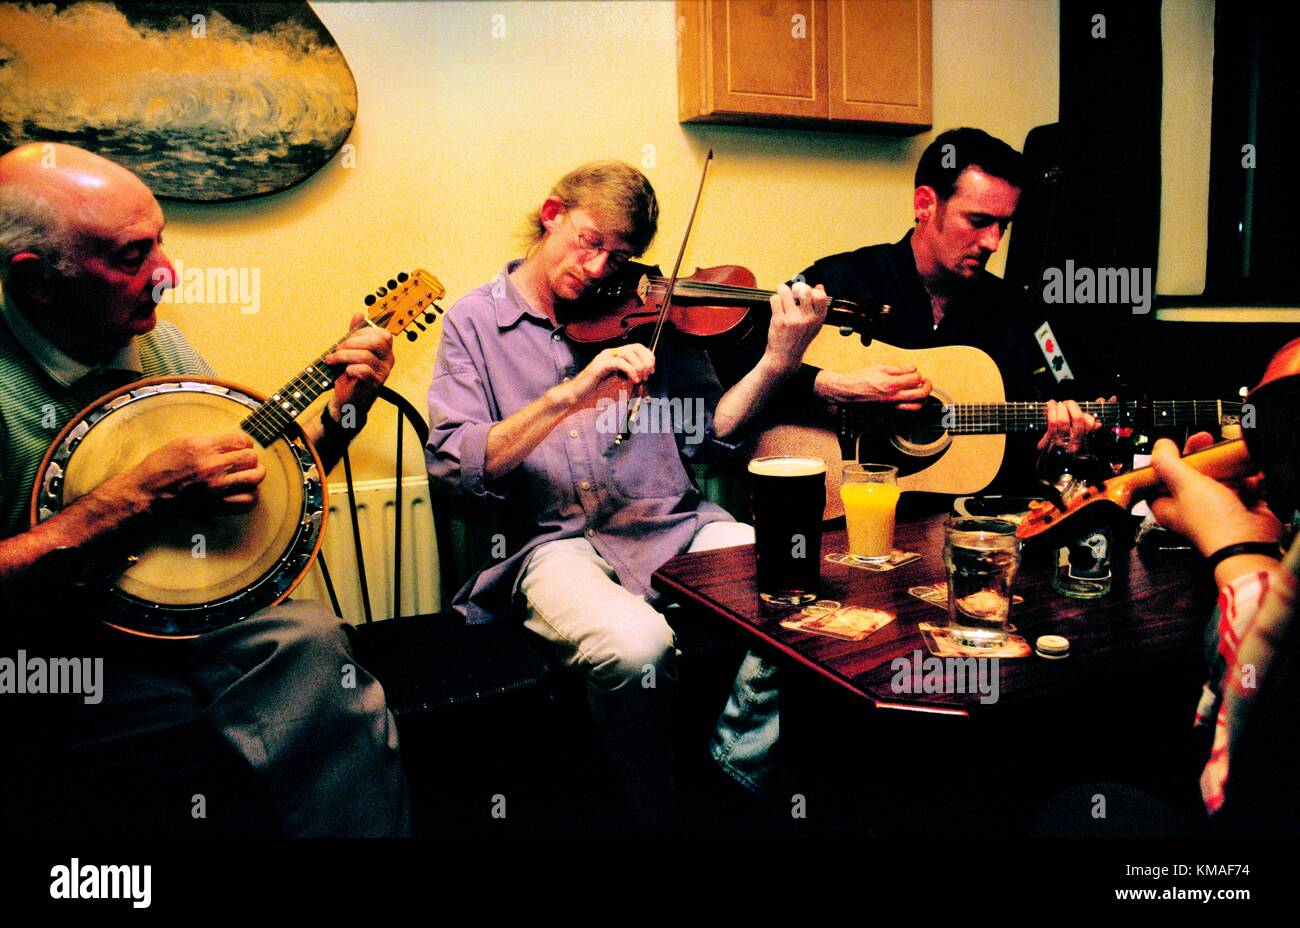 Irish musicians in pub called the Clew Bay on Achill Island, County Mayo, west Ireland. - Stock Image